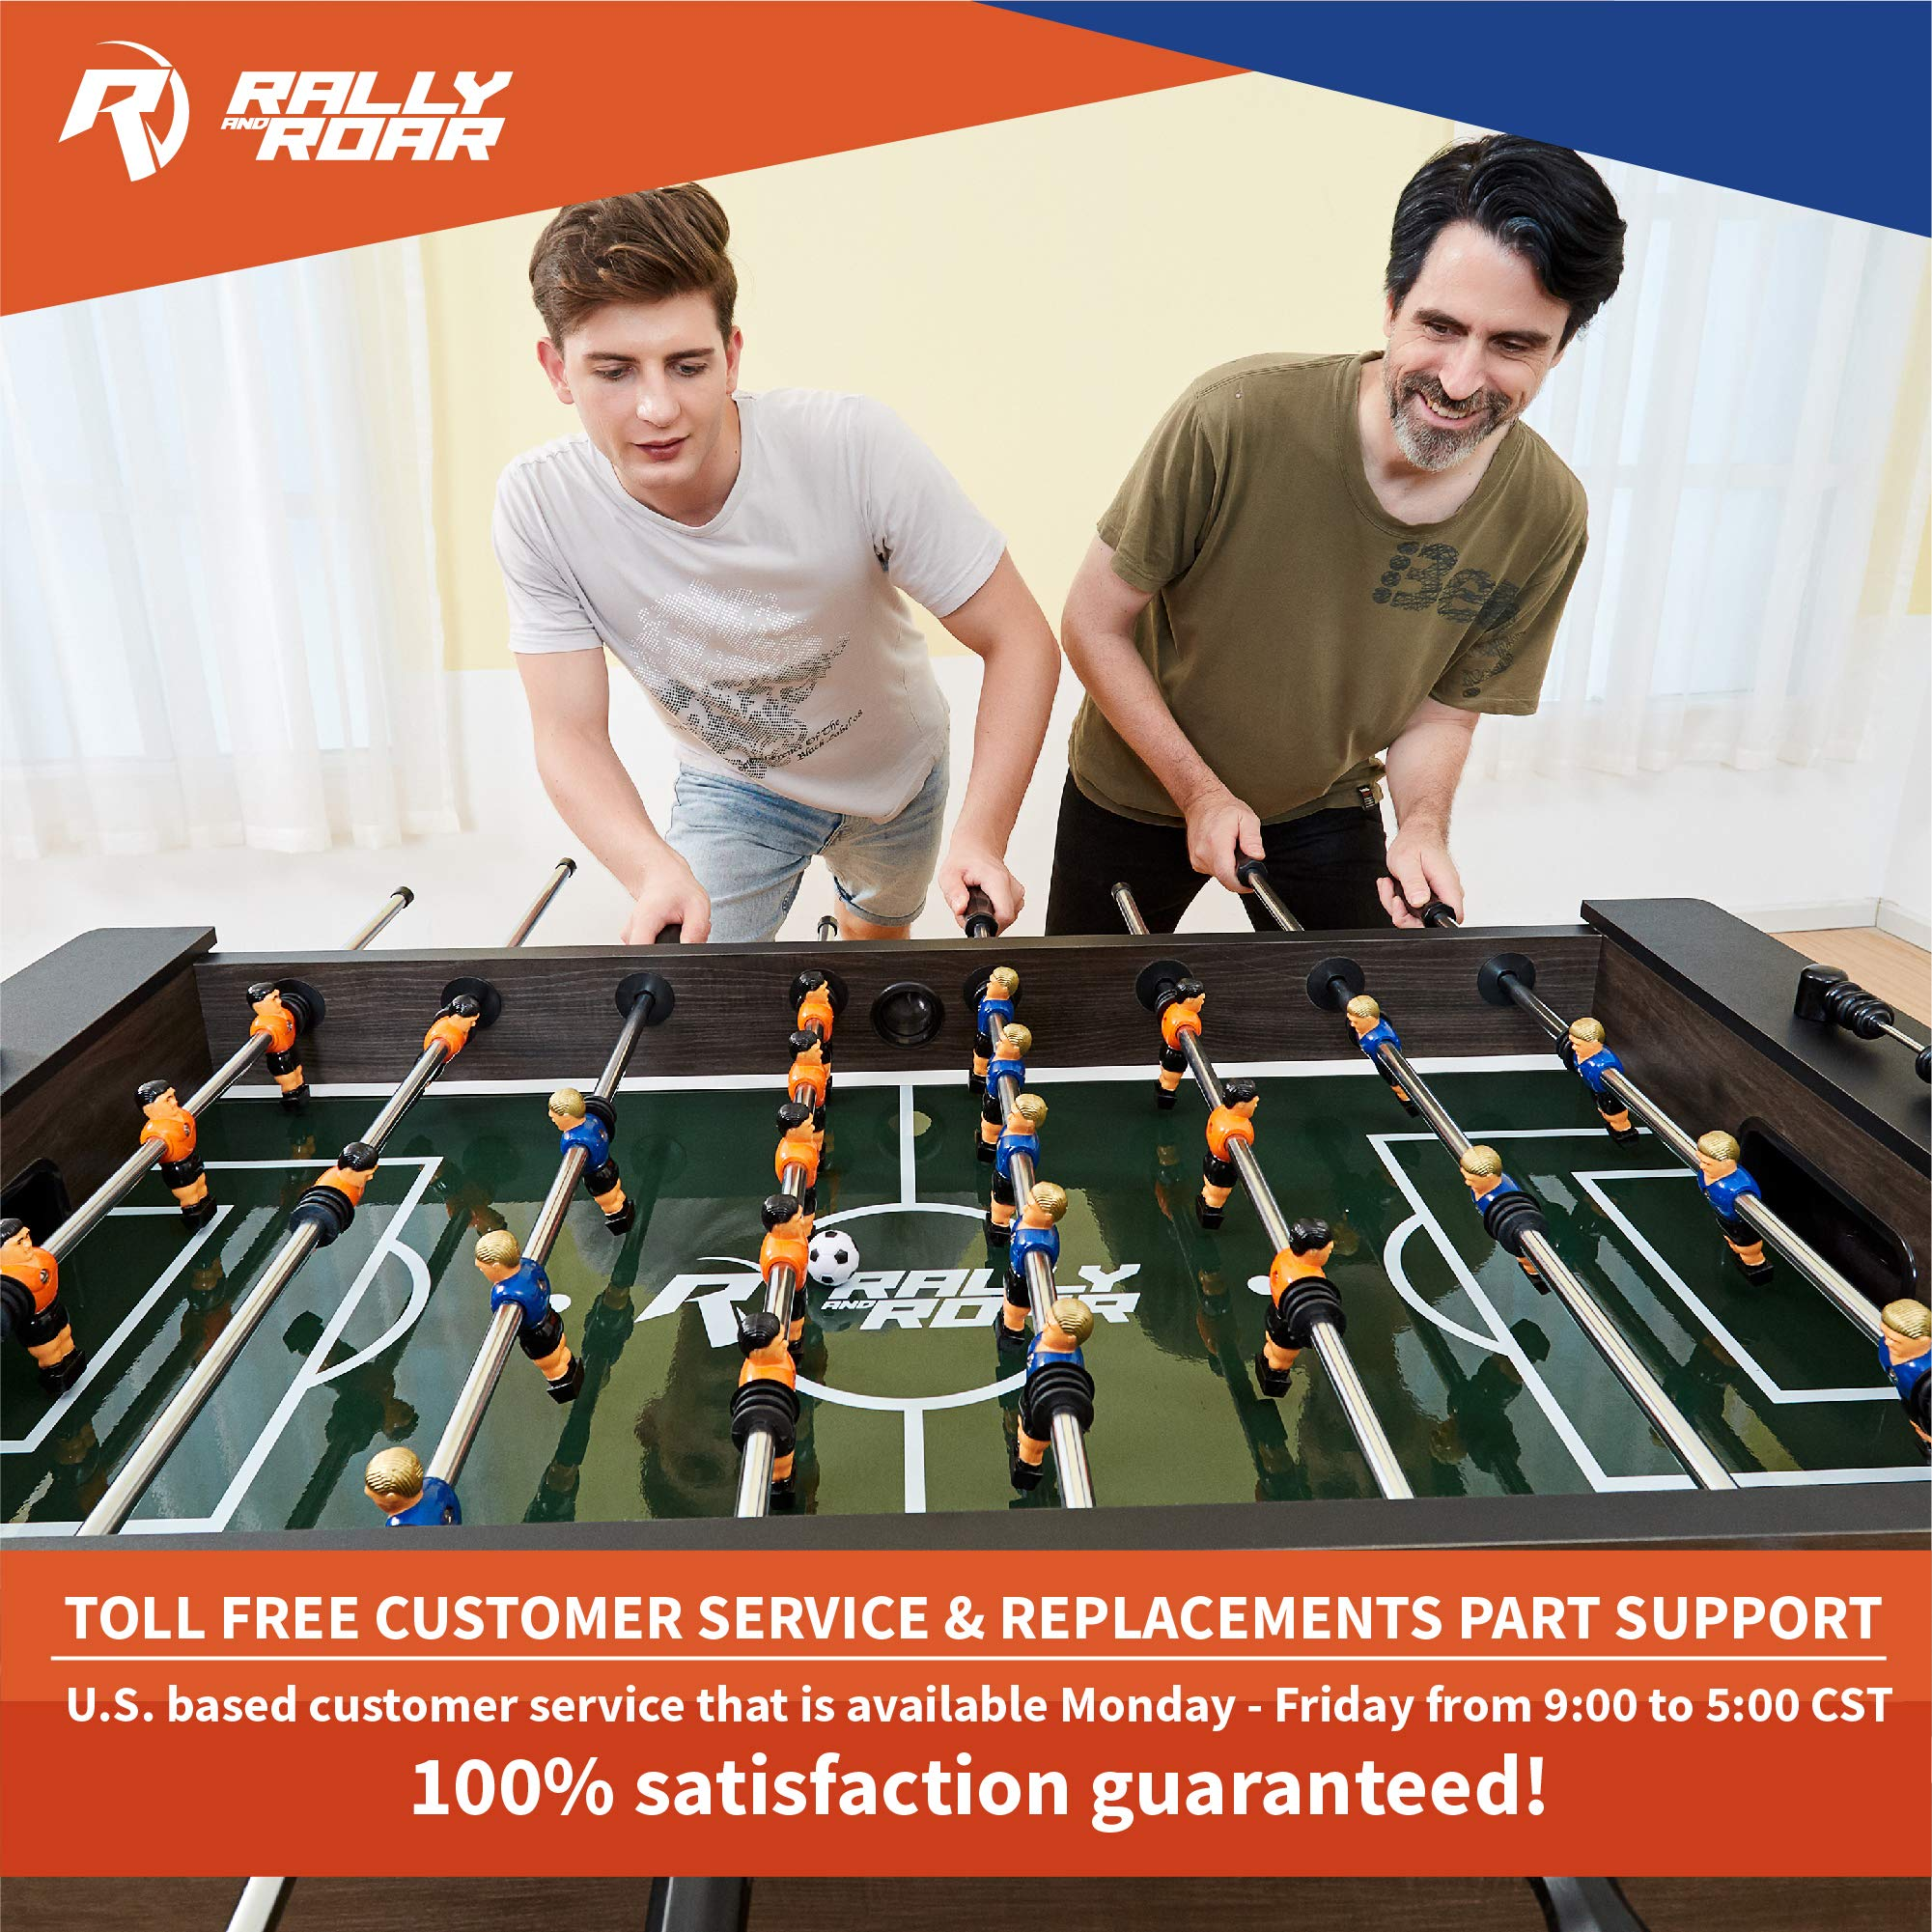 """Rally and Roar Foosball Table Game – 56"""" Standard Size Fun, Multi Person Table Soccer Adults, Kids - Recreational Foosball Games Game Rooms, Arcades, Bars, Parties, Family Night by Rally and Roar (Image #7)"""